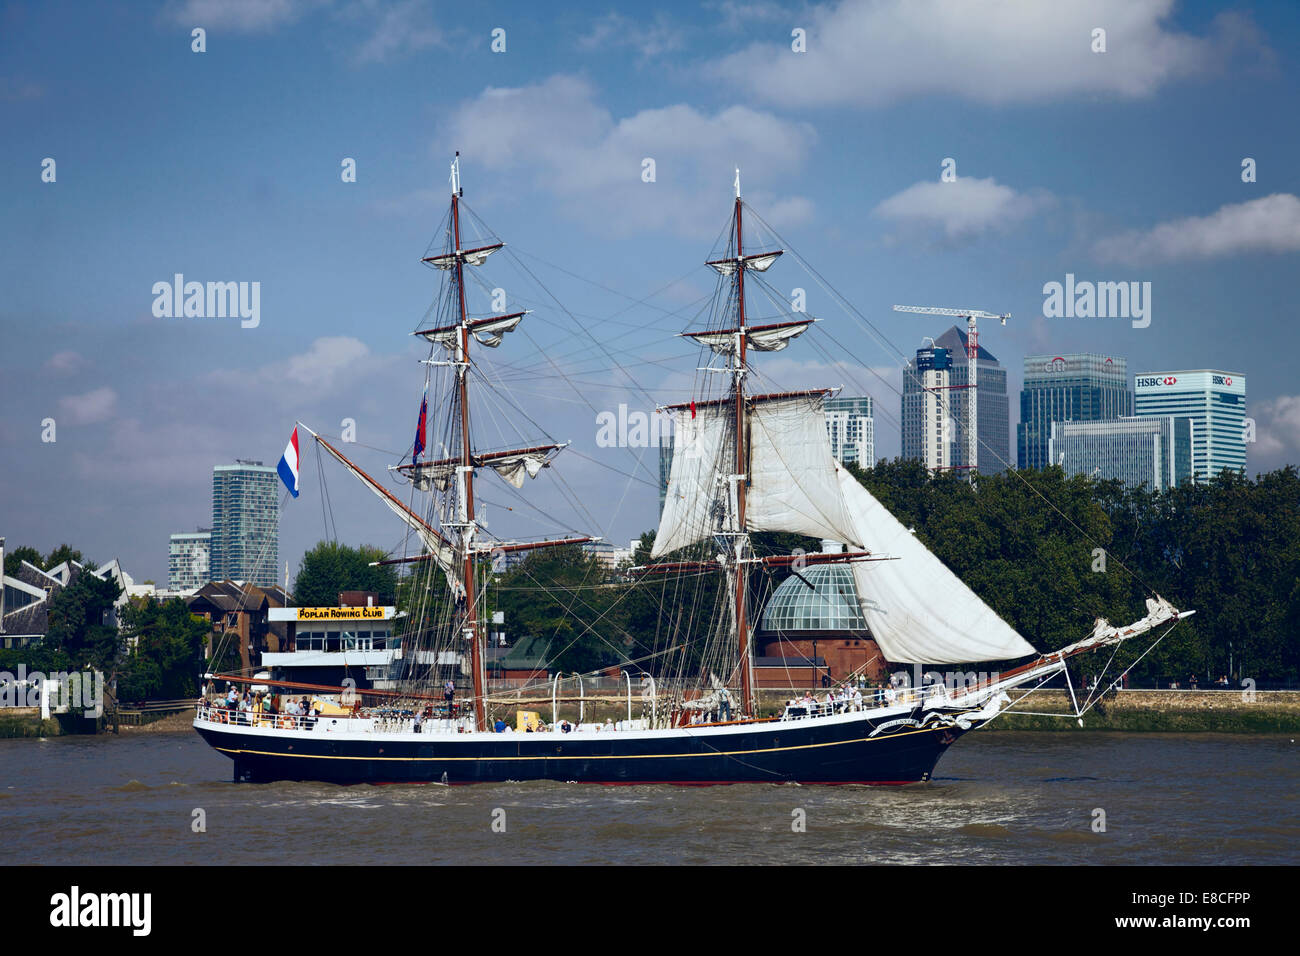 A tall ship sailing on the river Thames at Greenwich, London, UK. - Stock Image